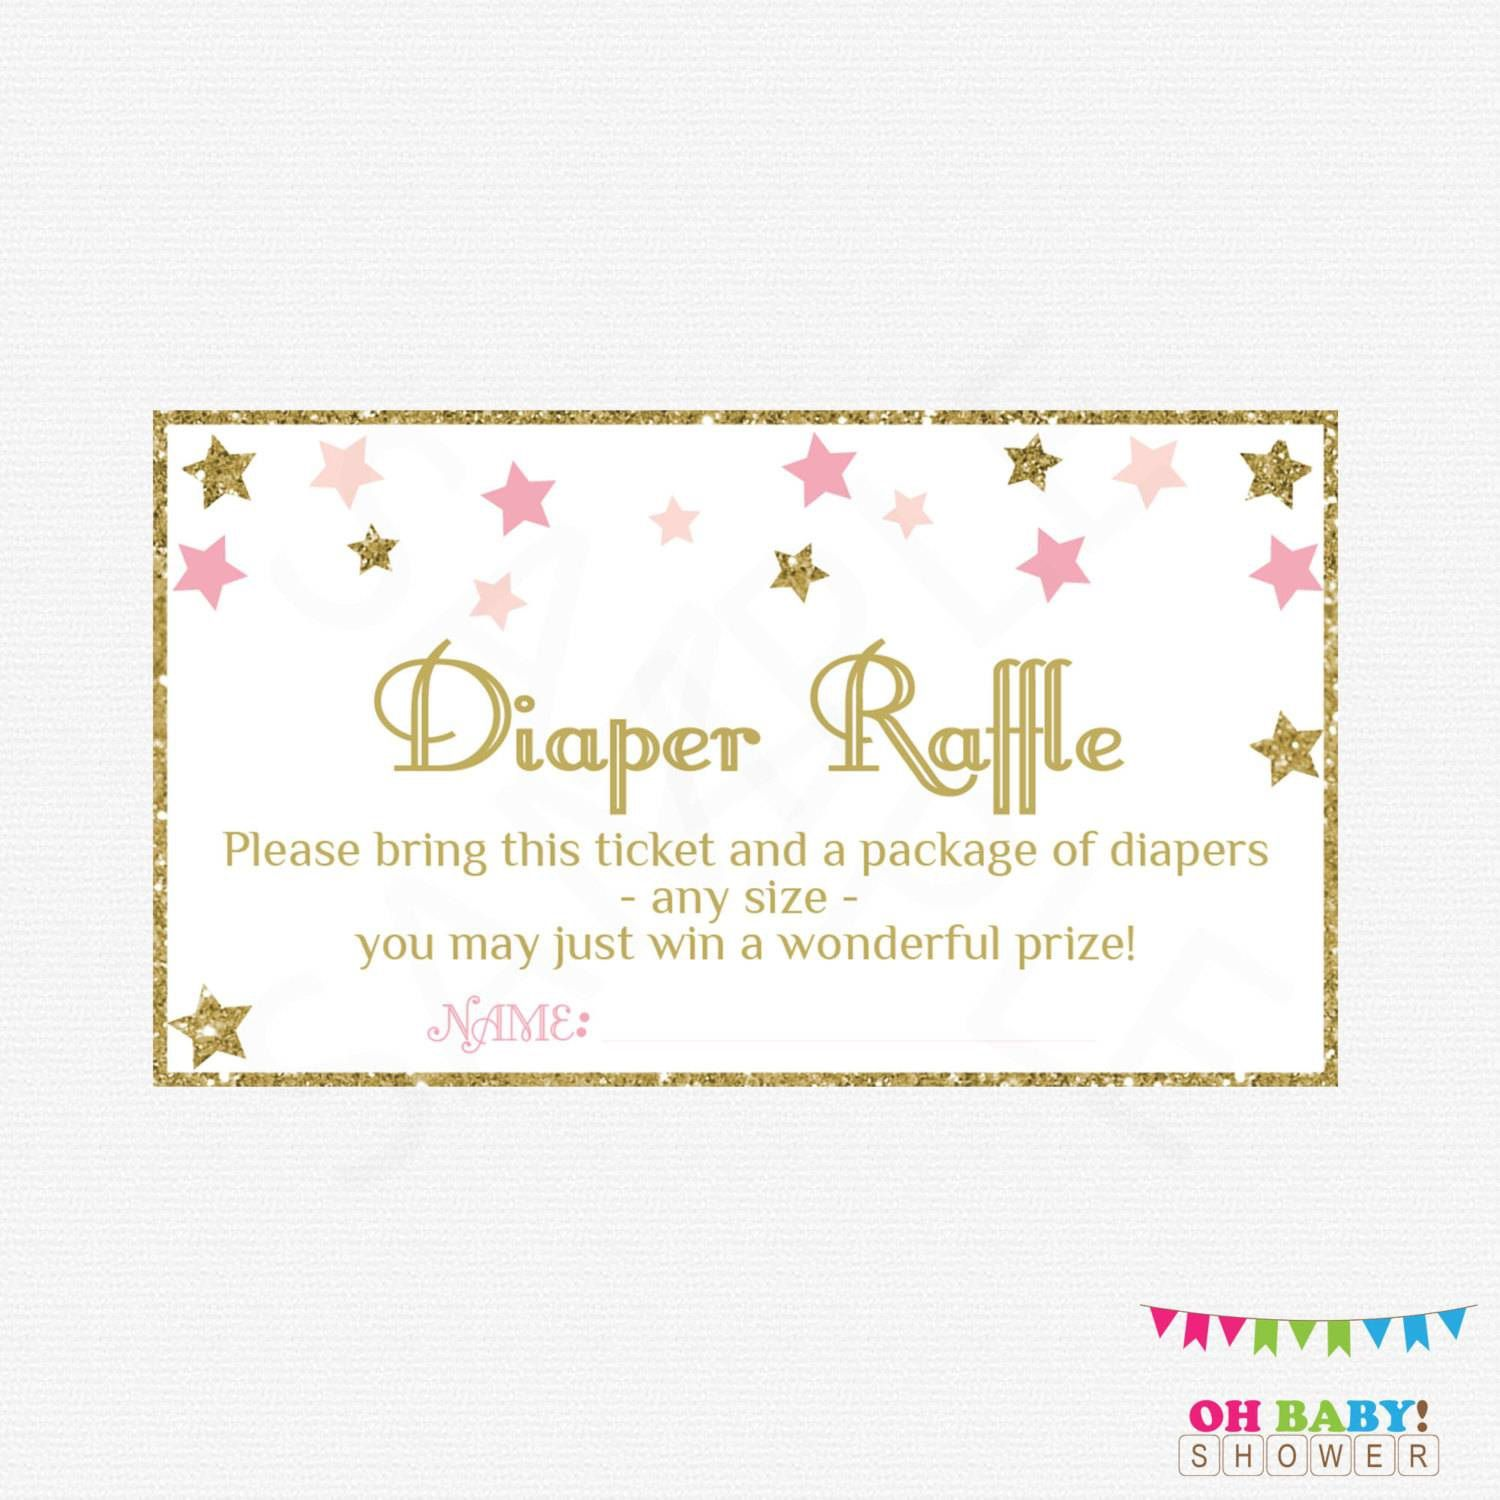 005 Astounding Diaper Raffle Ticket Template Highest Quality  Free Printable DownloadFull